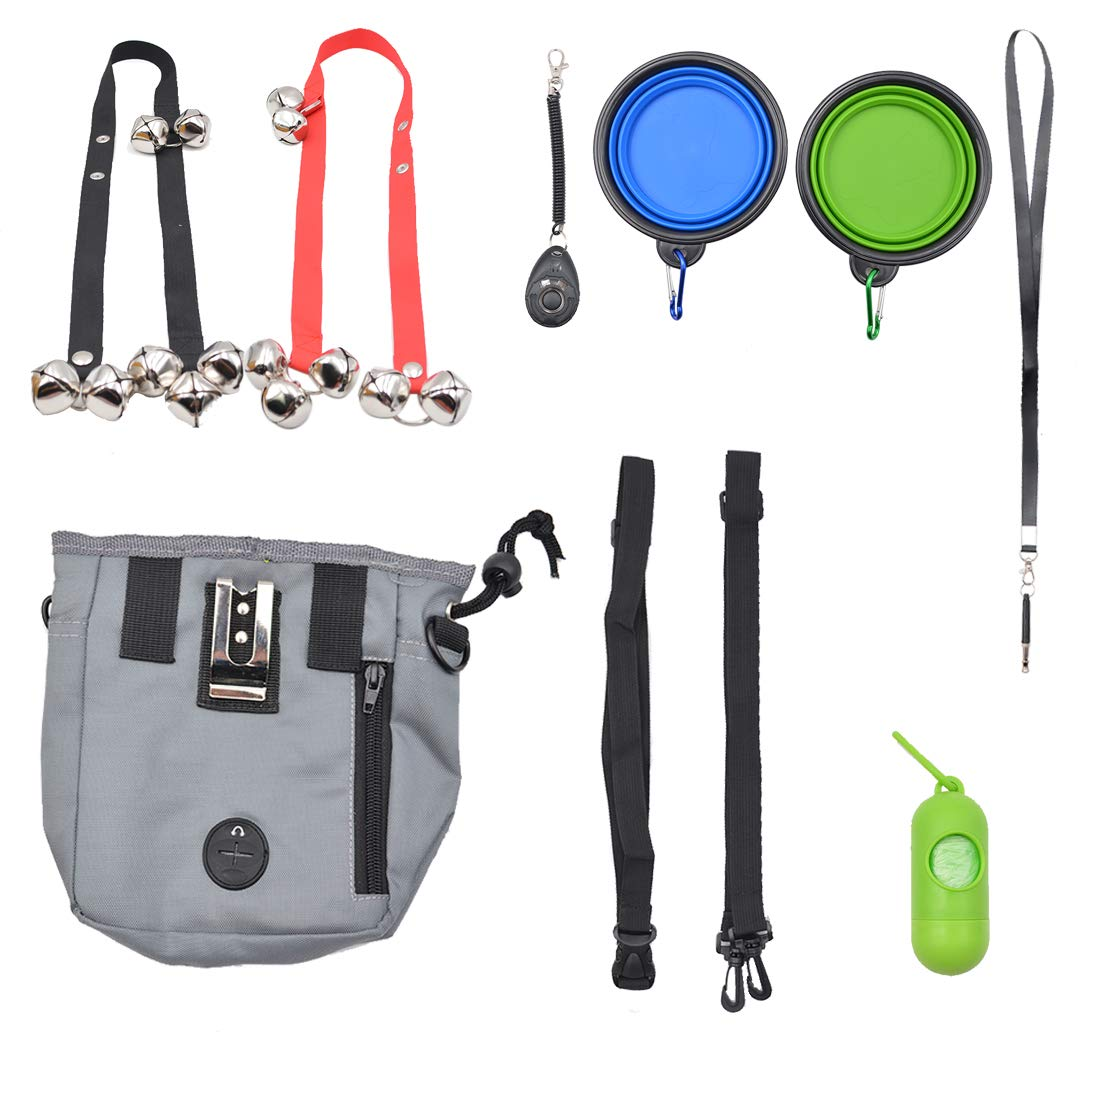 ANREONER Dog Training Kit Set of 8, Dog Treat Pouch, Doggie Doorbell for Potty Training, Collapsible Dog Water & Food Bowl, Puppy Training Clicker and Whistle to Stop Barking, Dog Waste Bag Dispenser by ANREONER